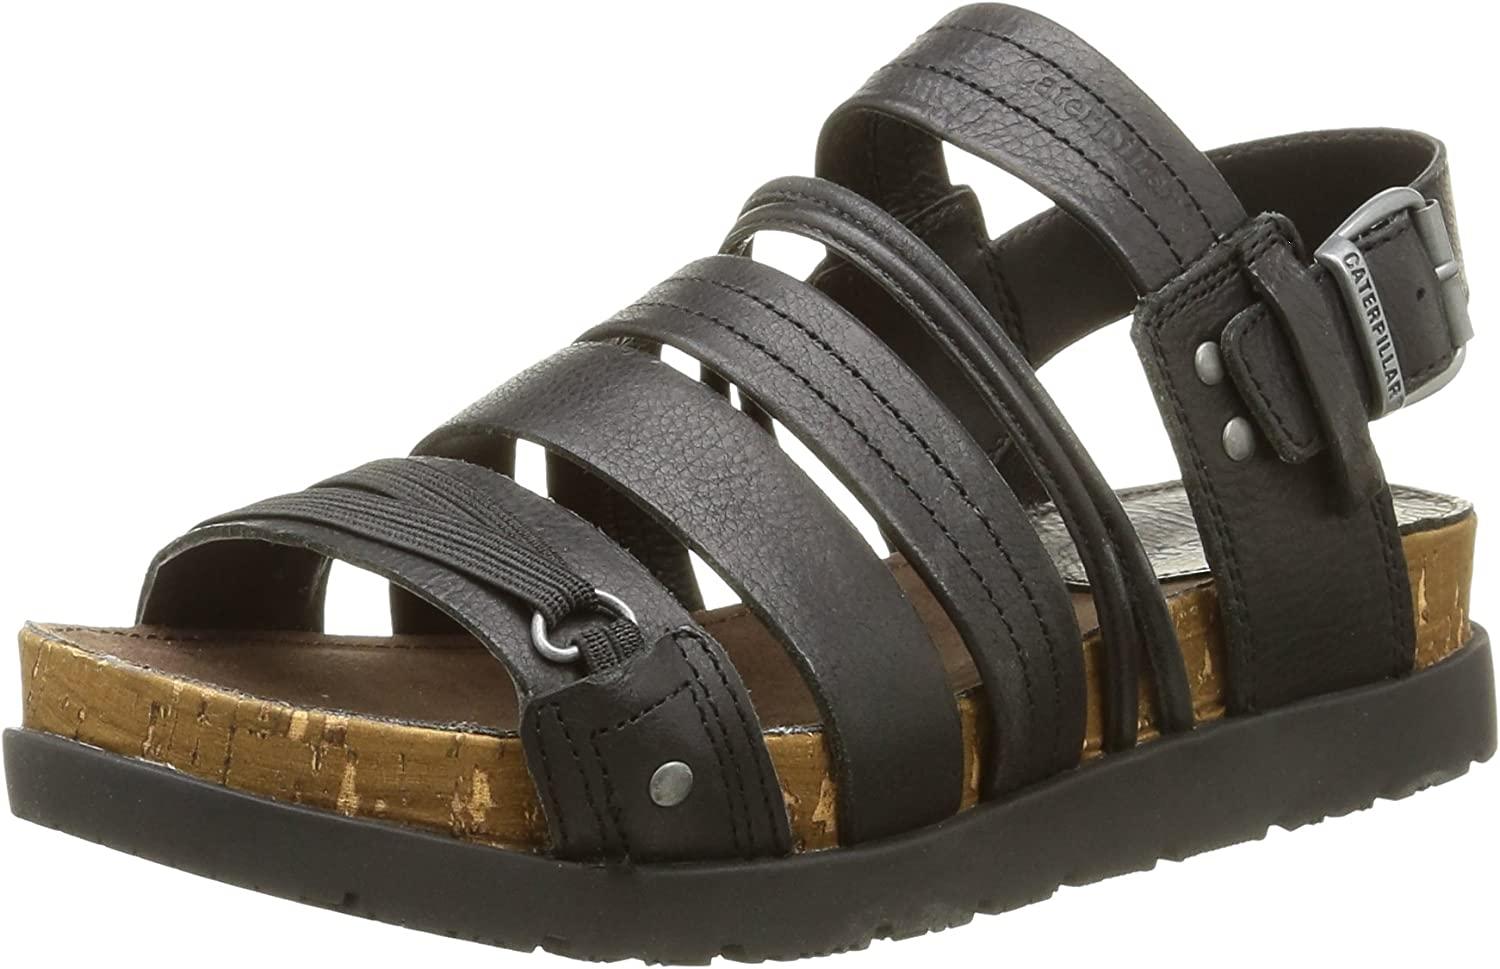 Caterpillar Women's Syd Flat Sandal